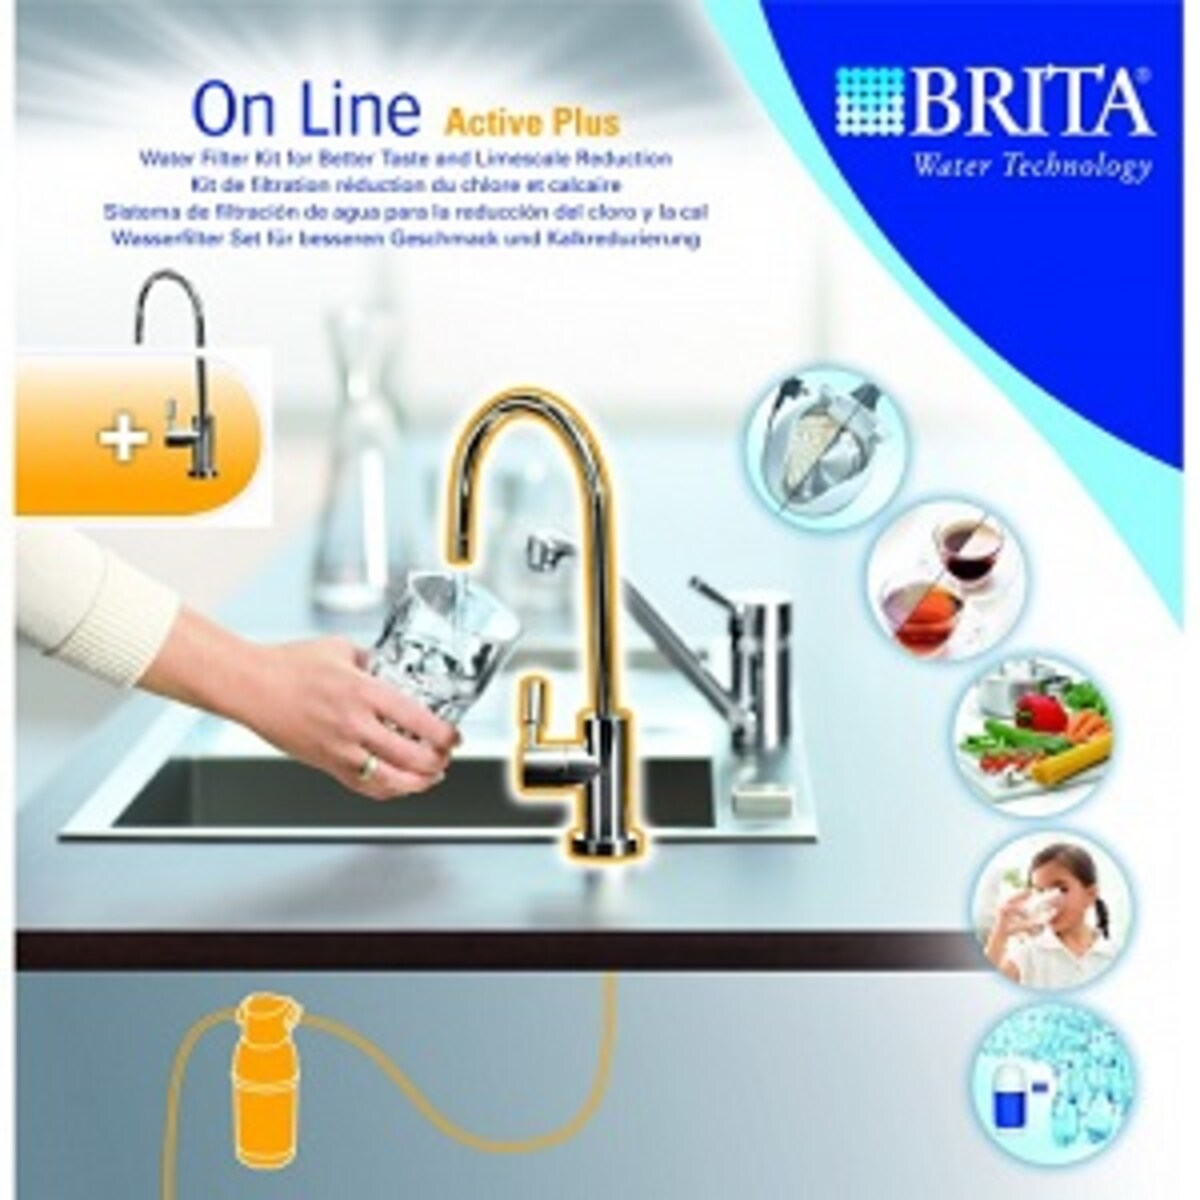 On Line Active Plus филтърна система Brita